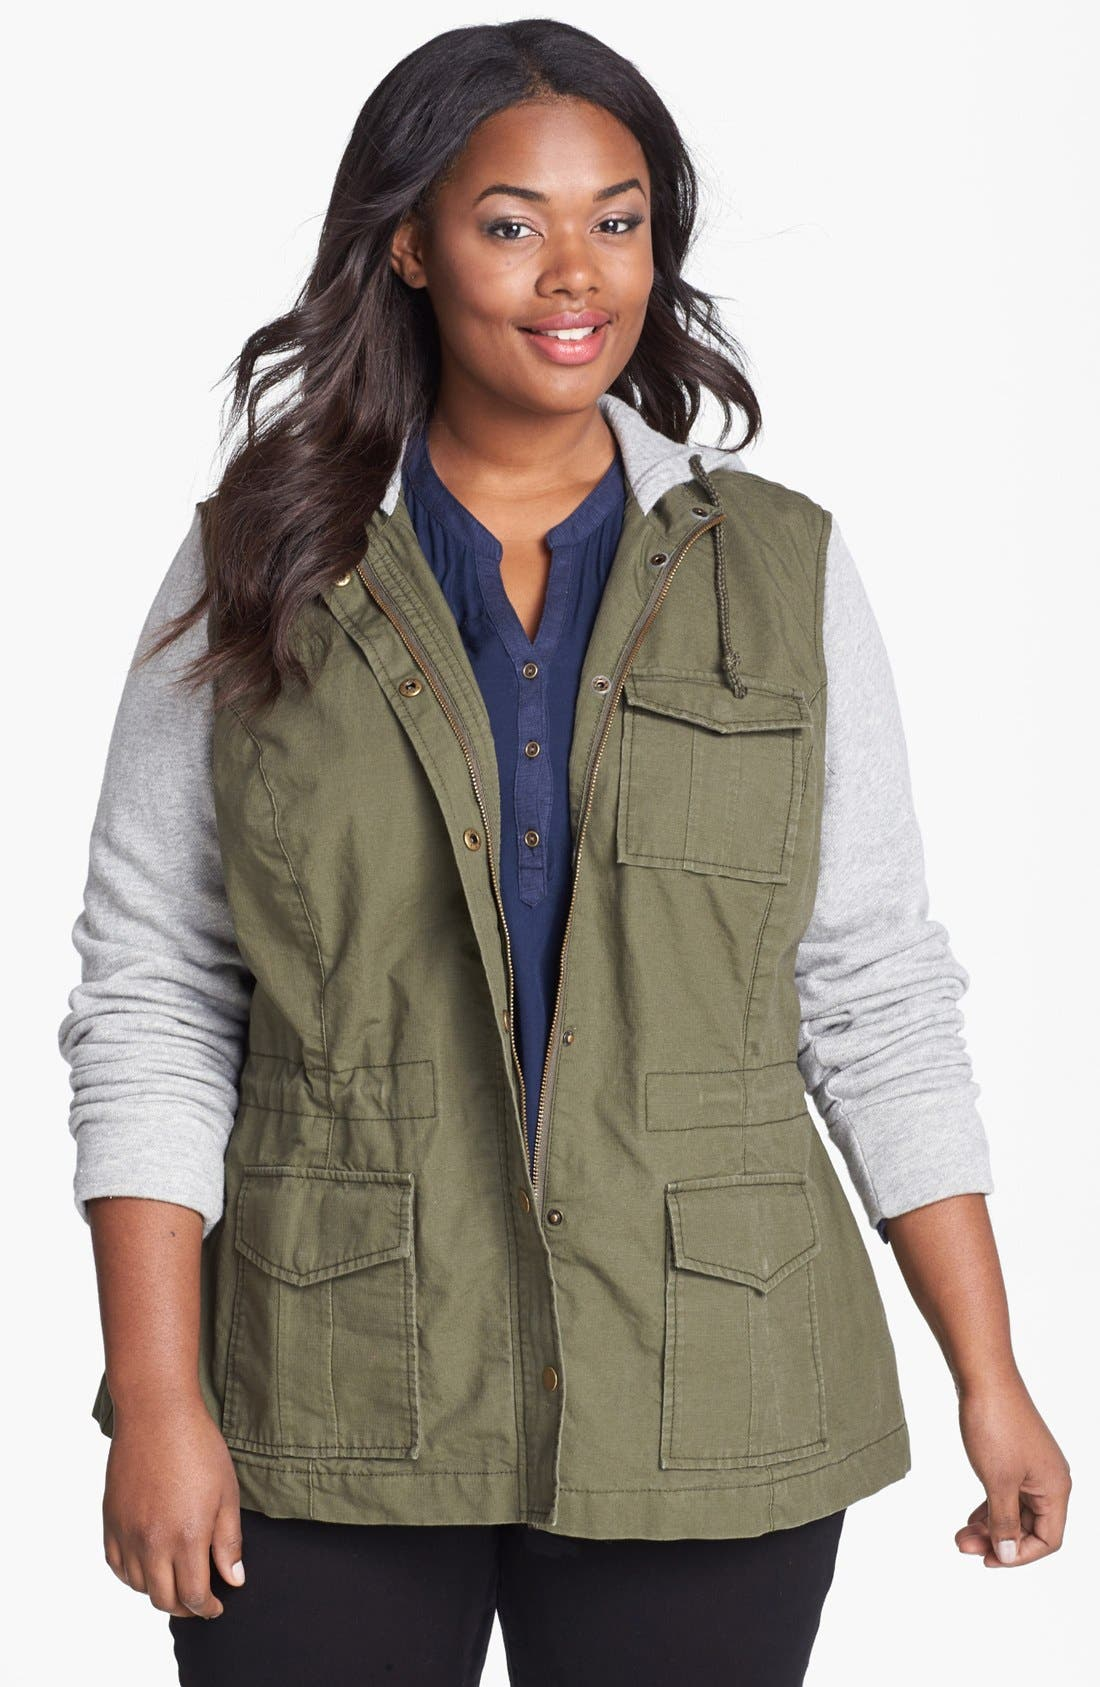 Alternate Image 1 Selected - Lucky Brand French Terry Military Jacket (Plus Size)